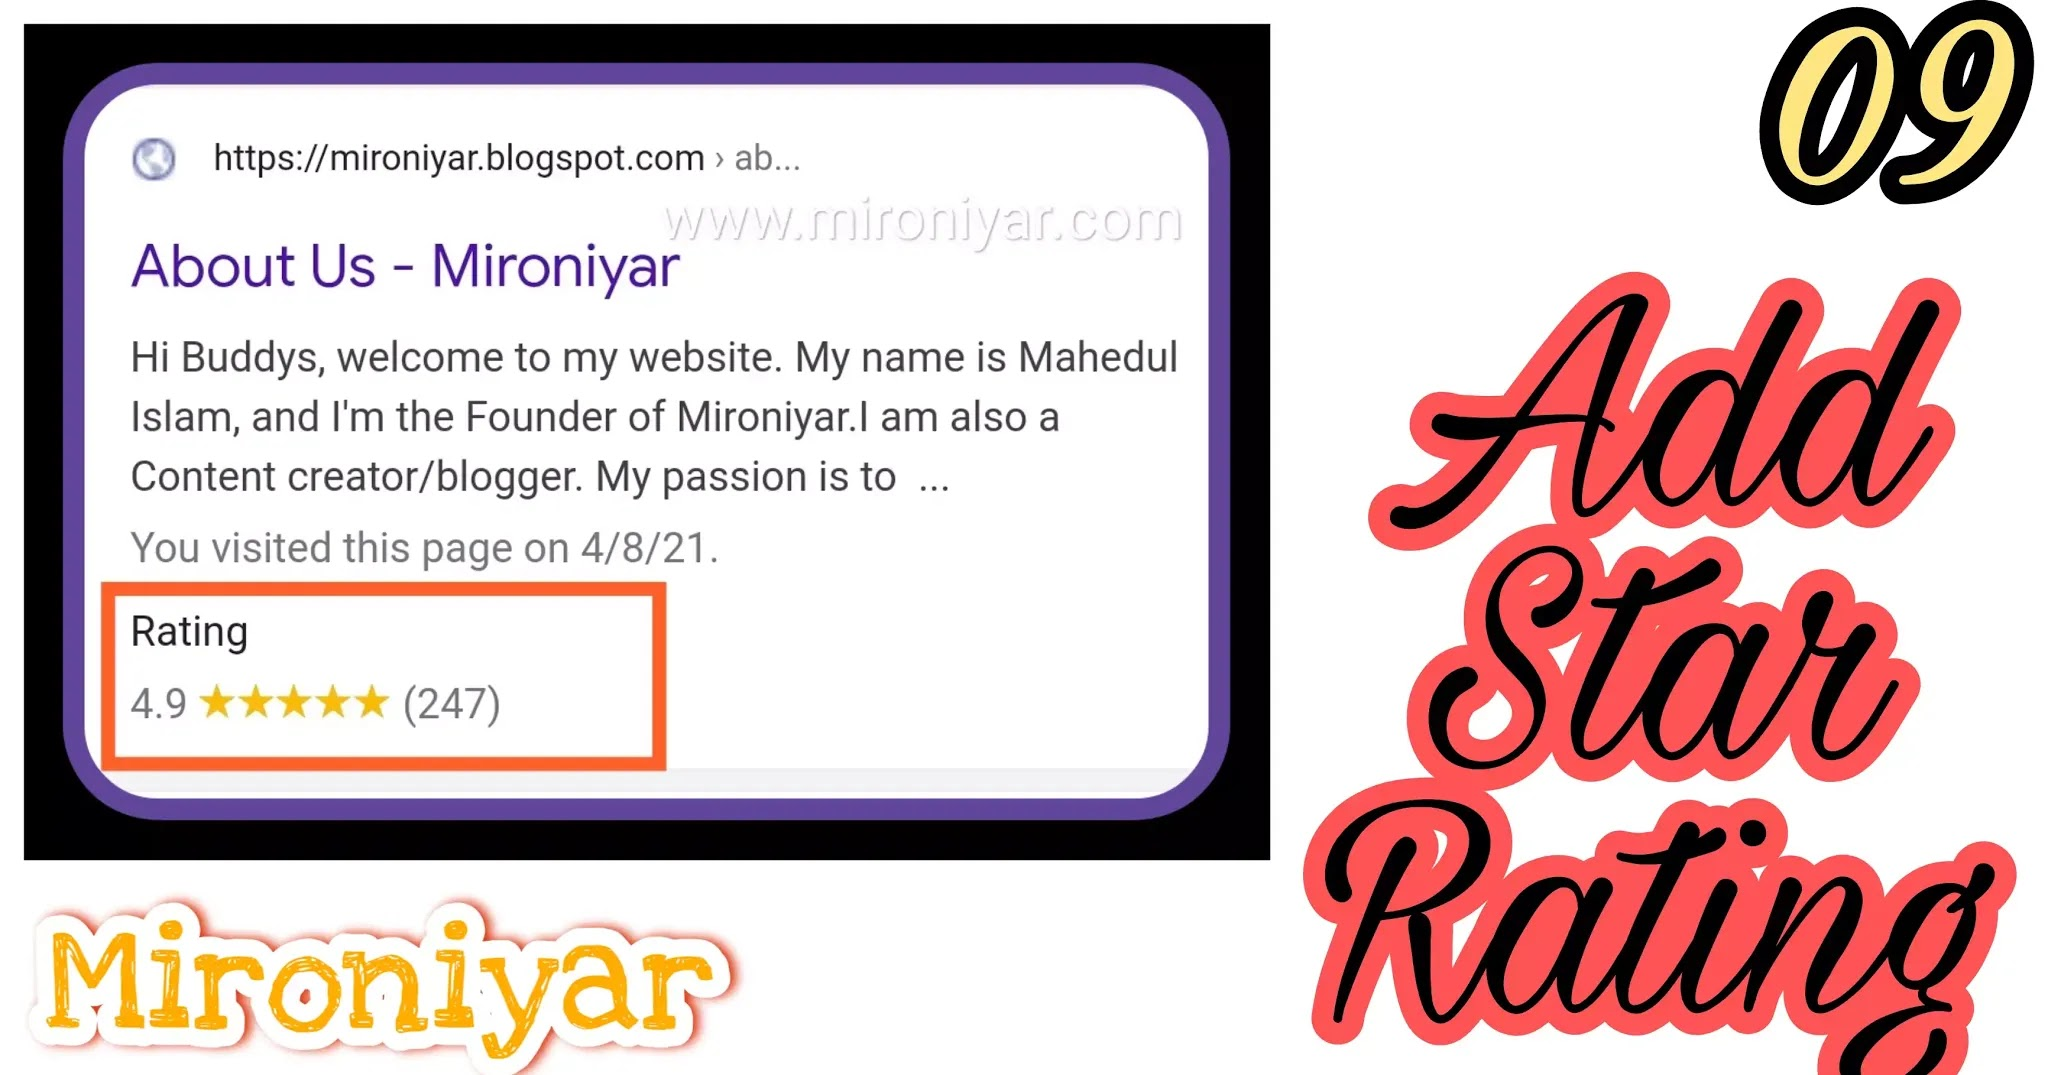 add a star rating to my website?, Add Review Star Rating In Blogger For Google Search Results?